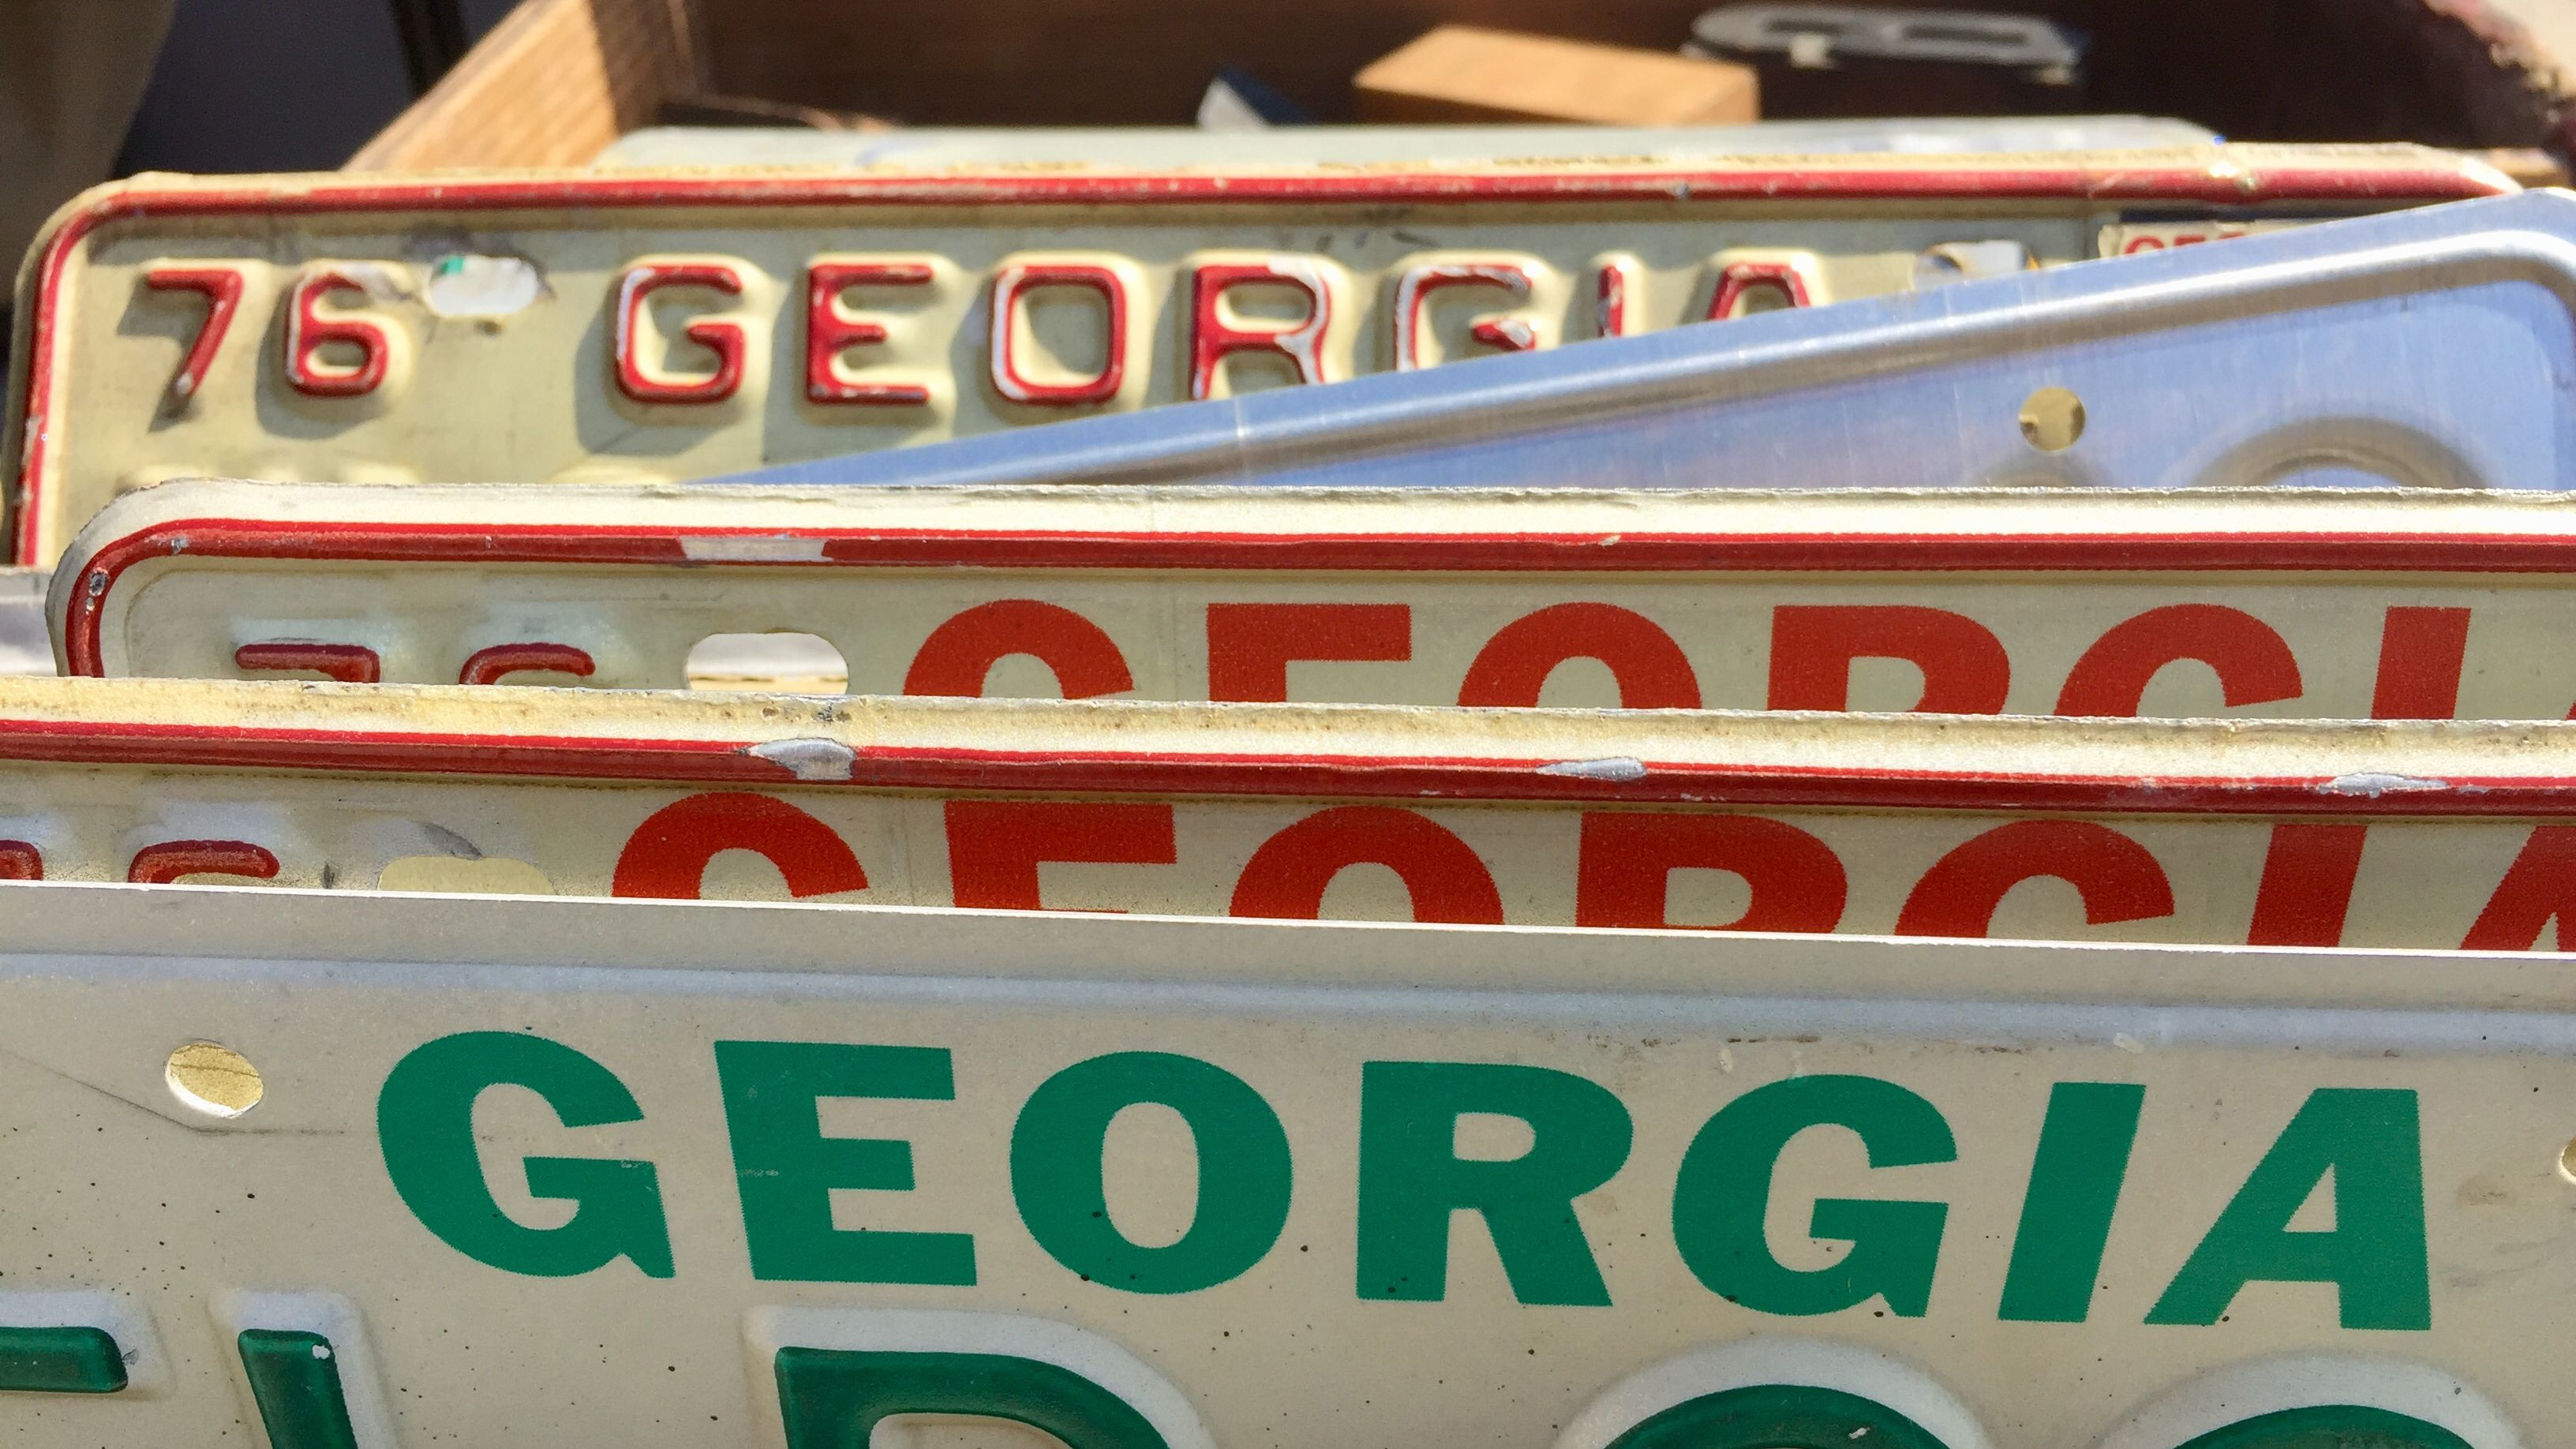 How to Register Your Vehicle in Georgia